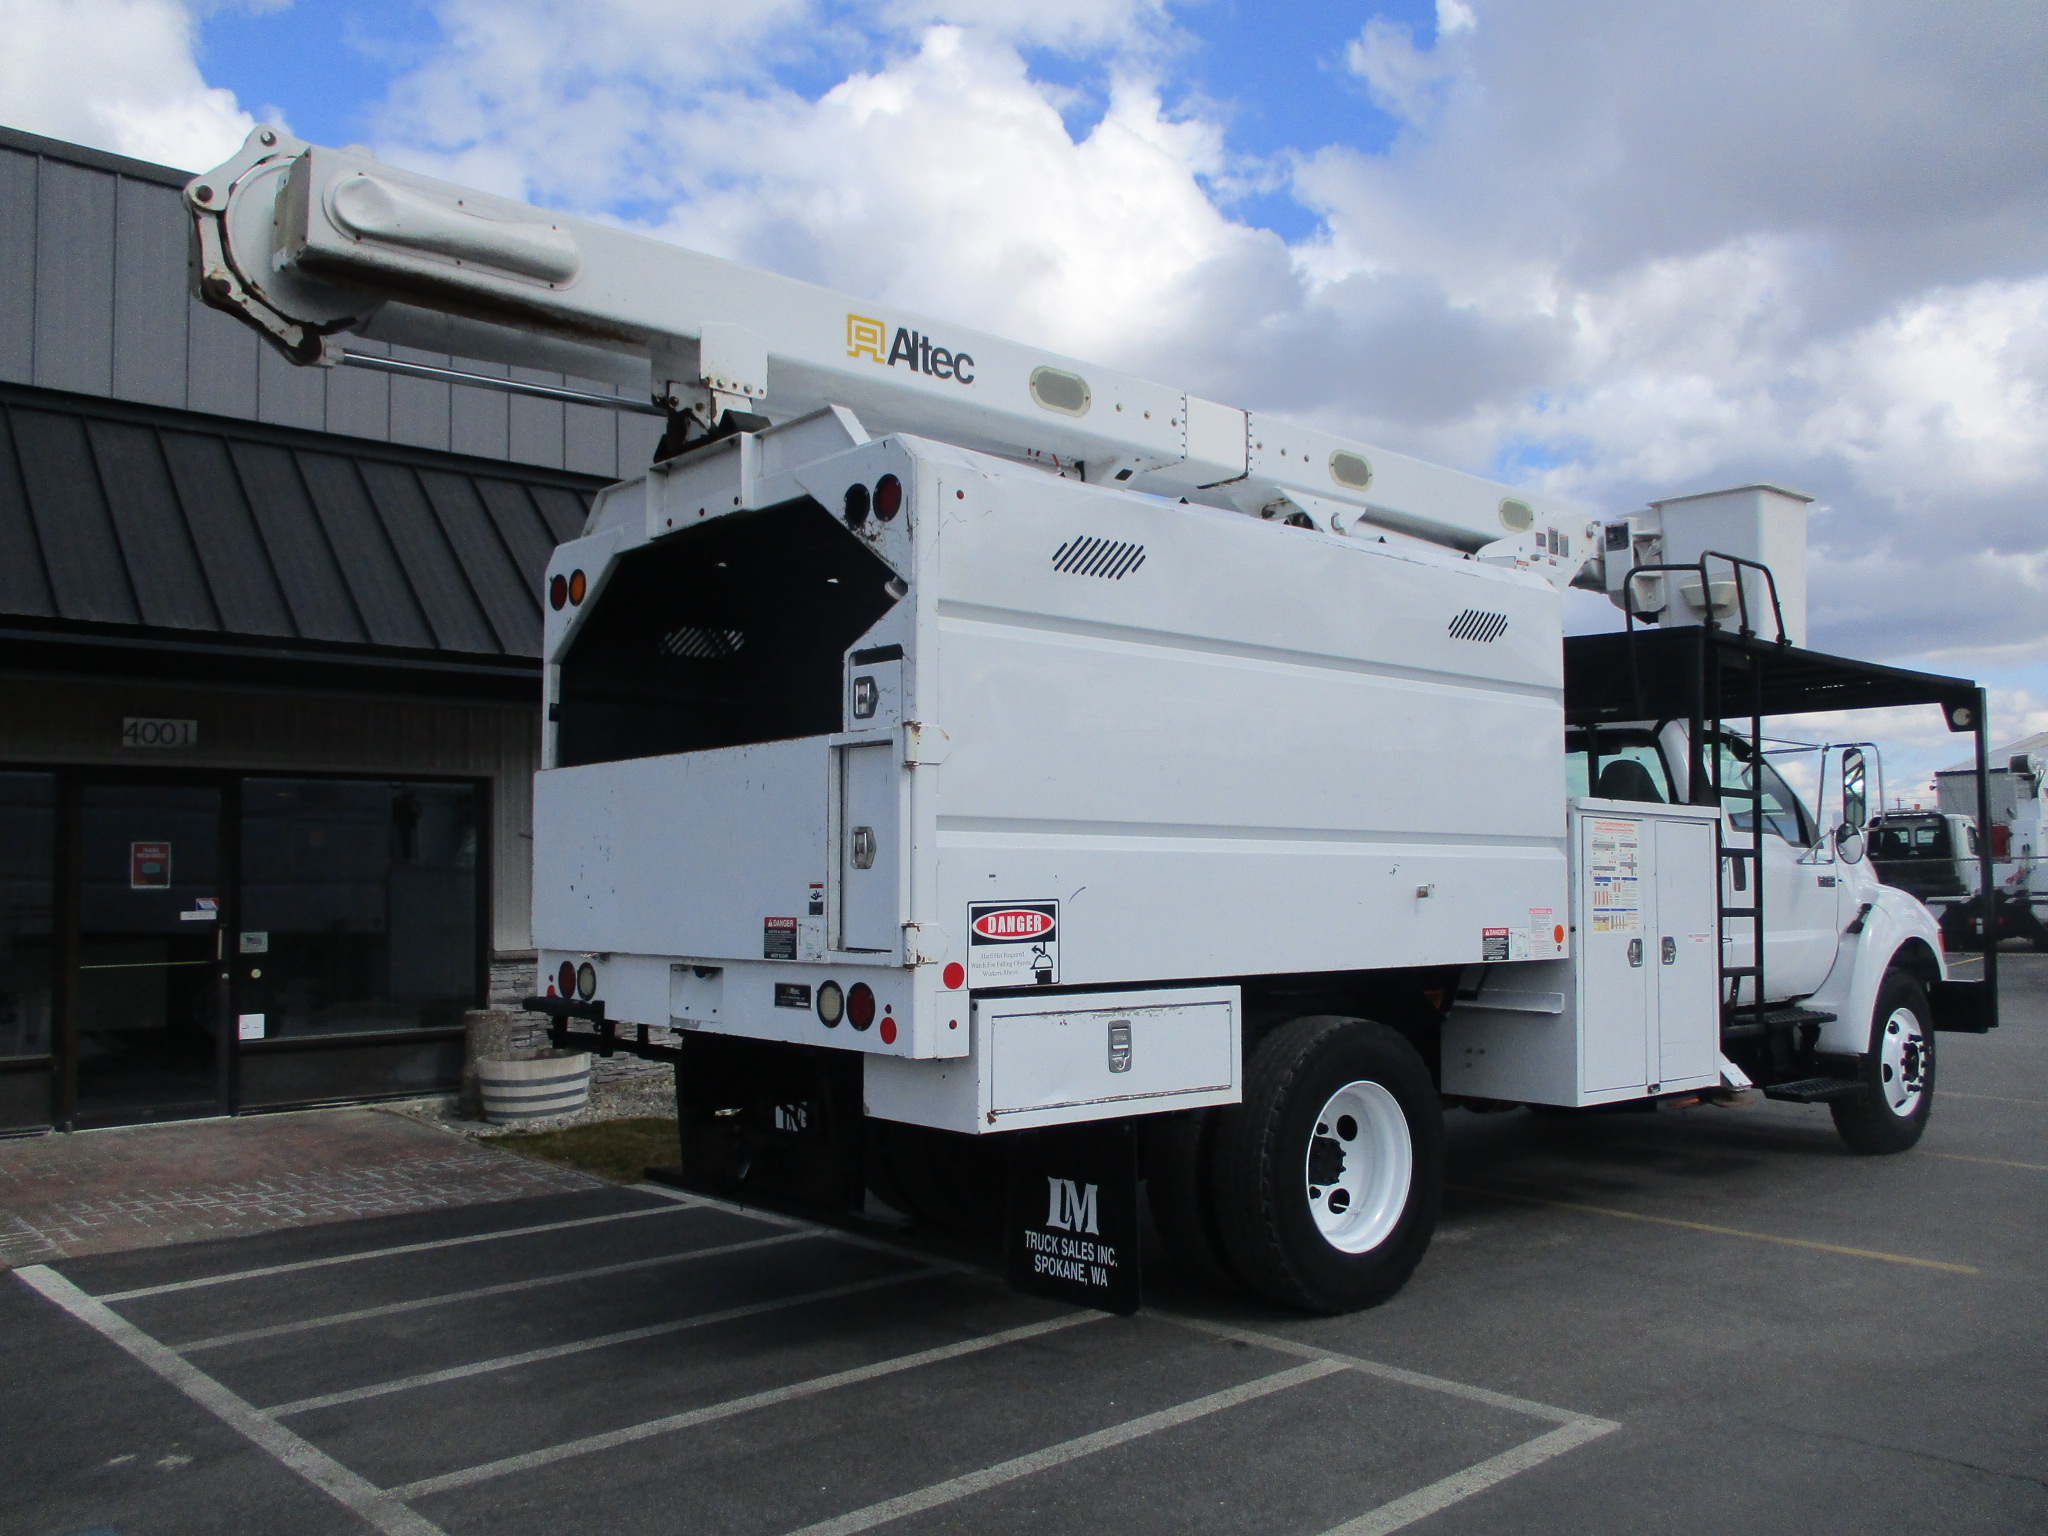 Thumbnail : 2011 ALTEC LRV-55 6012-REAR-1